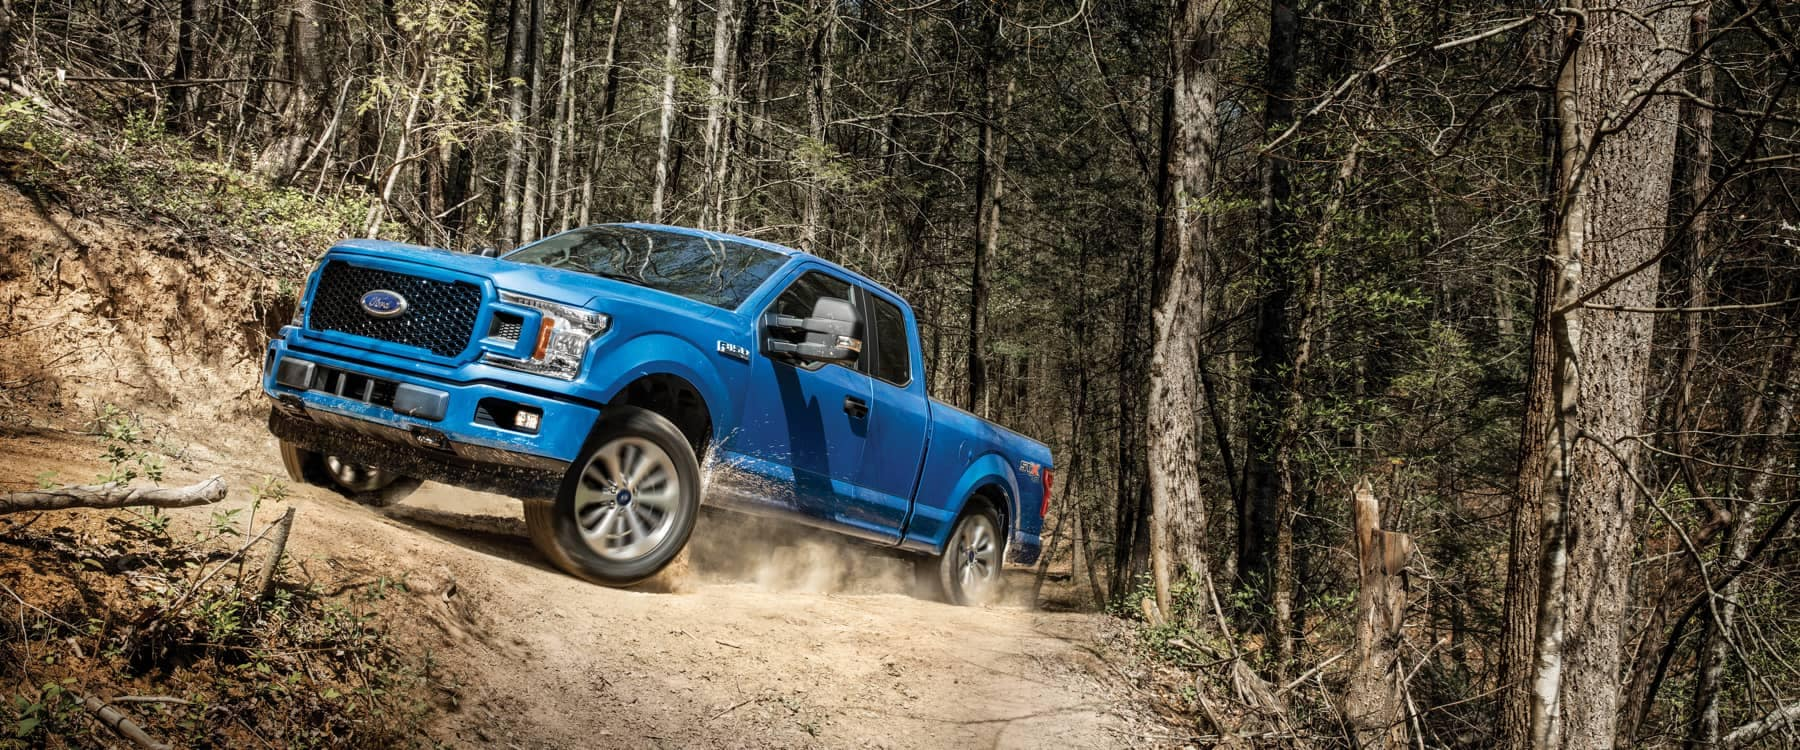 2020 blue ford f-150 in forest